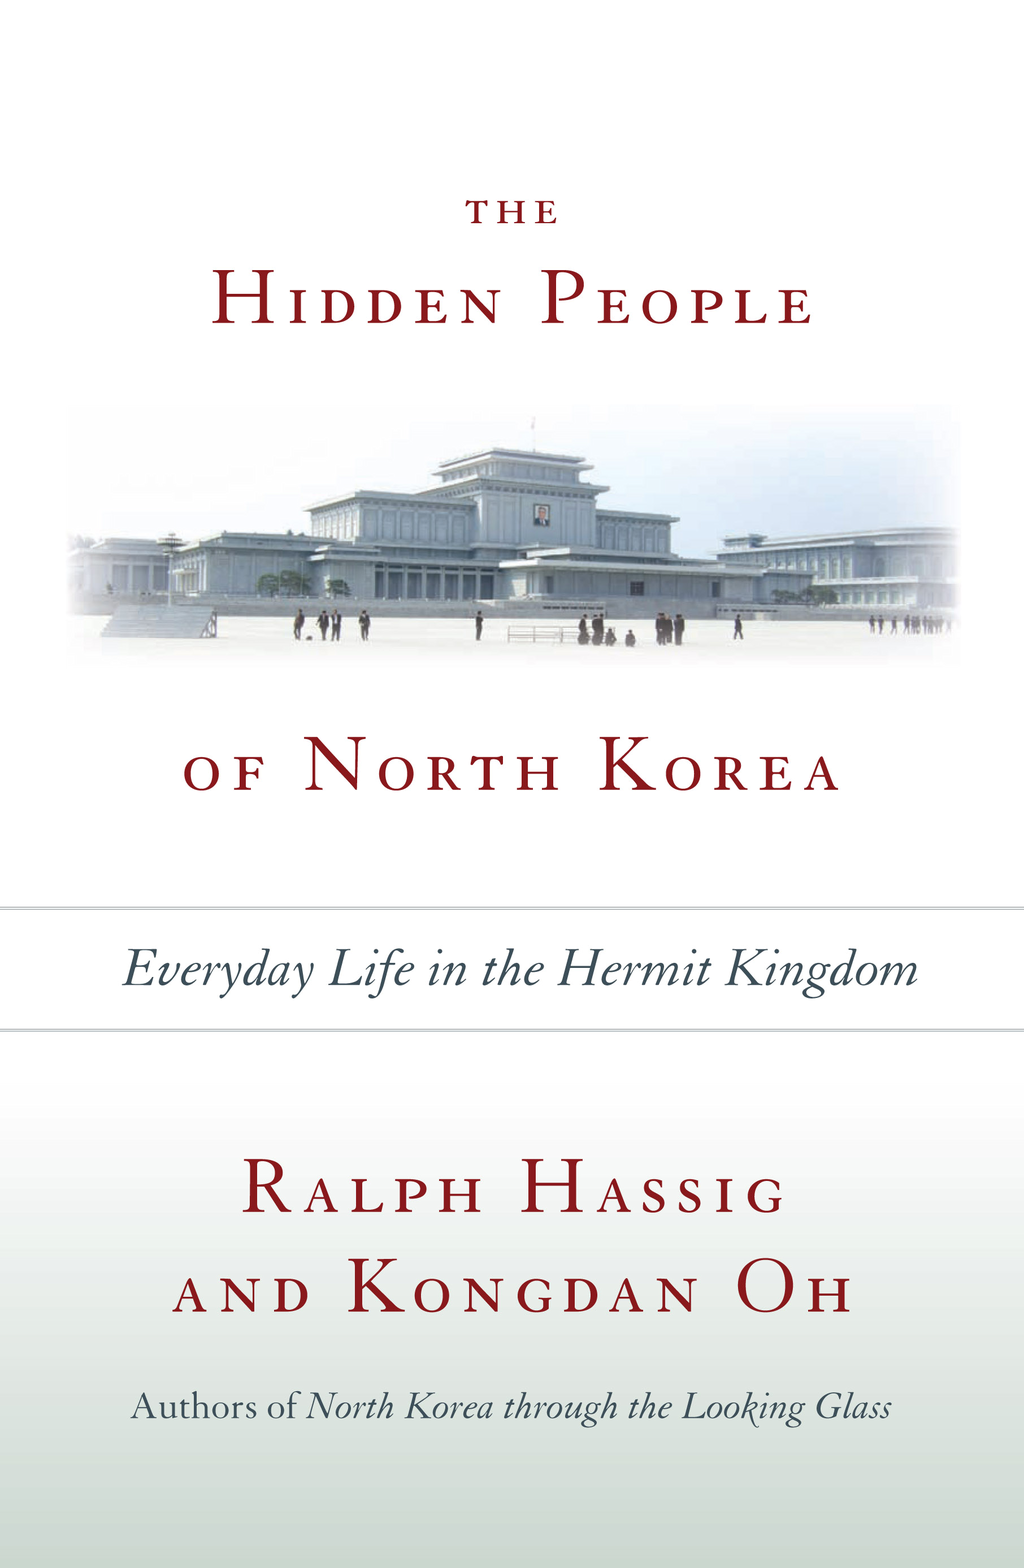 The Hidden People of North Korea By: Kongdan Oh,Ralph Hassig